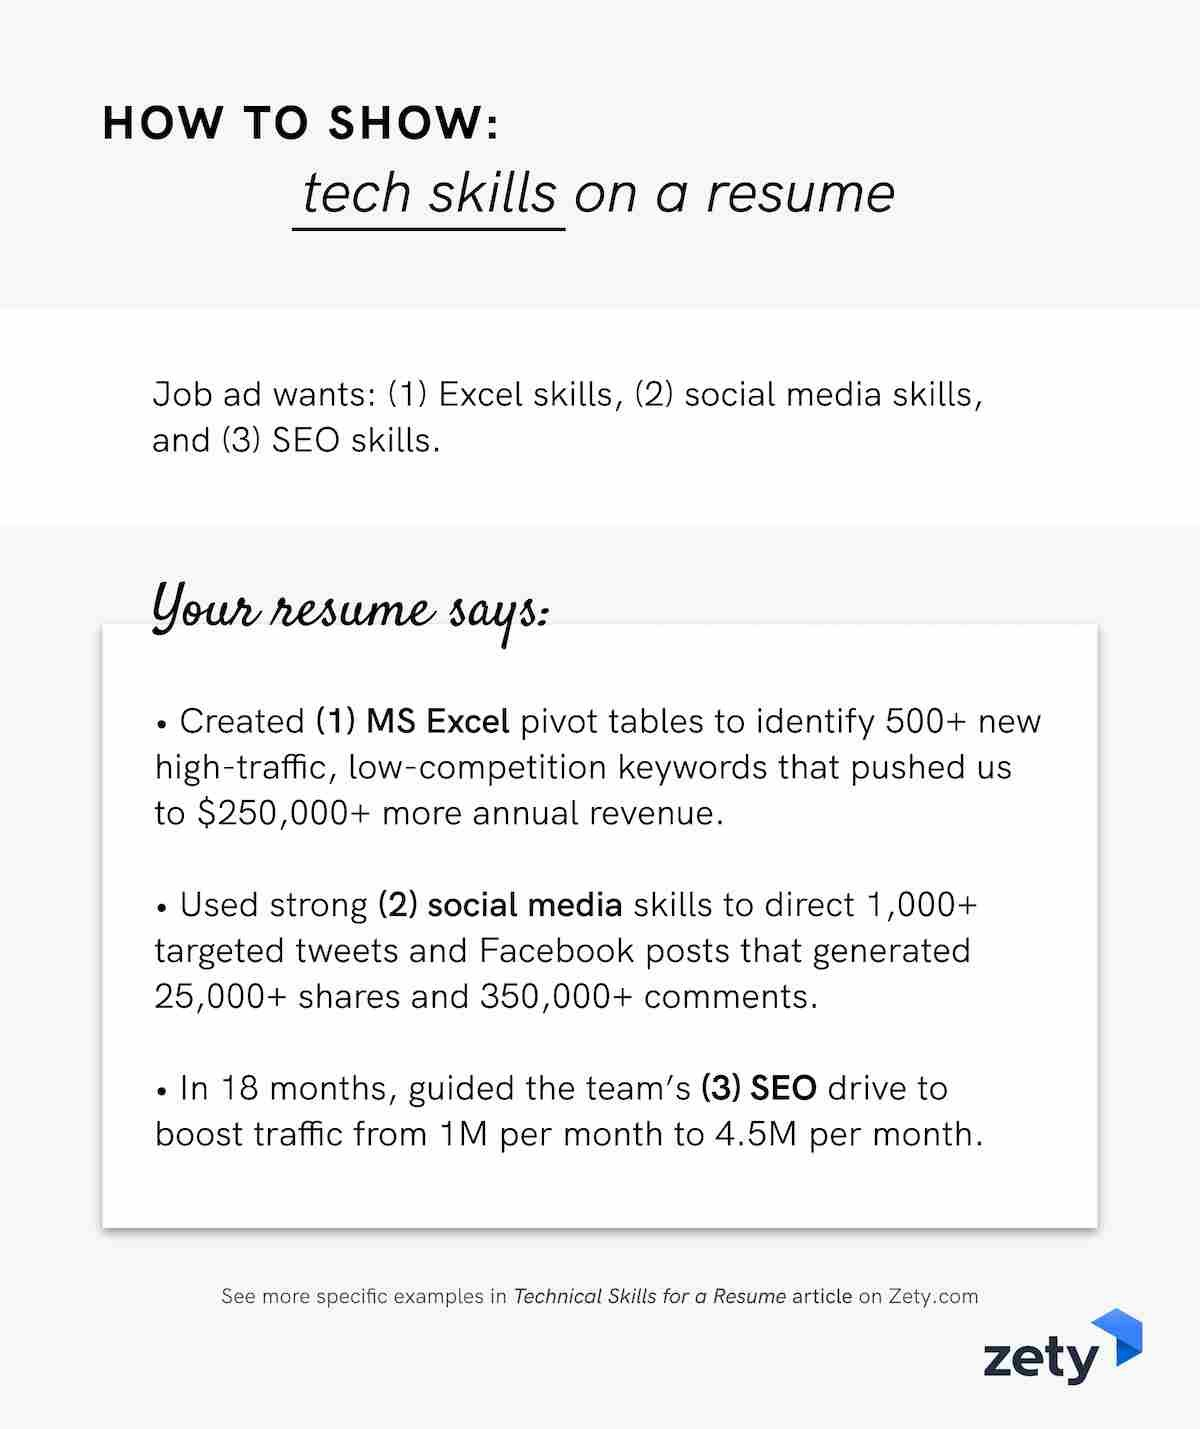 technical skills for resume with examples strengths to show tech on visually appealing Resume Strengths For Resume Examples